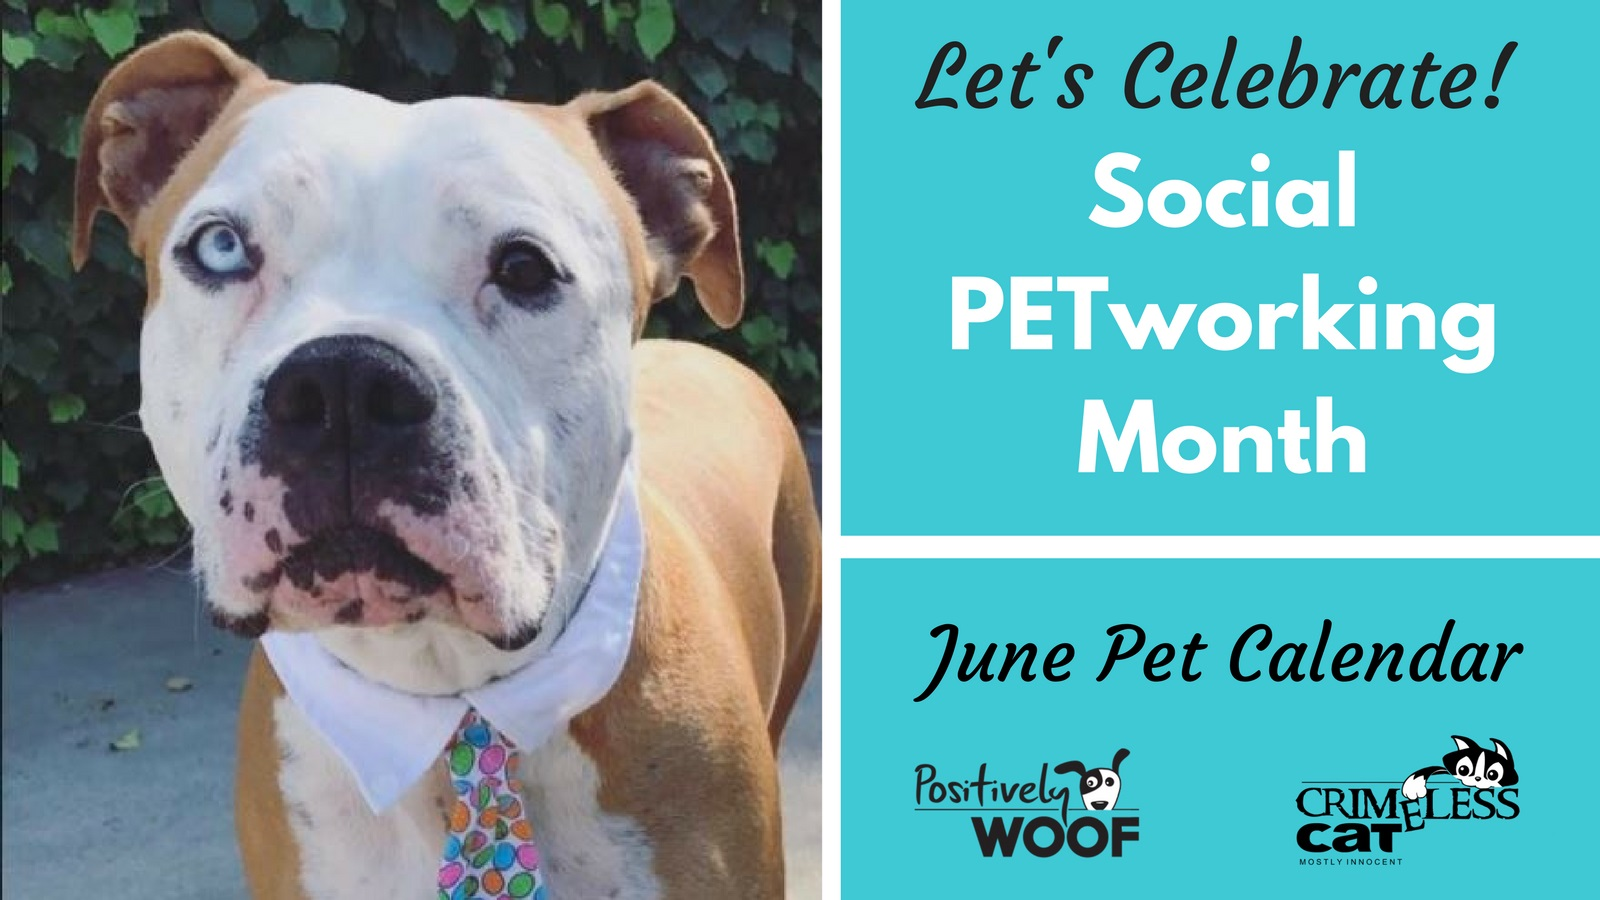 social-petworking-month